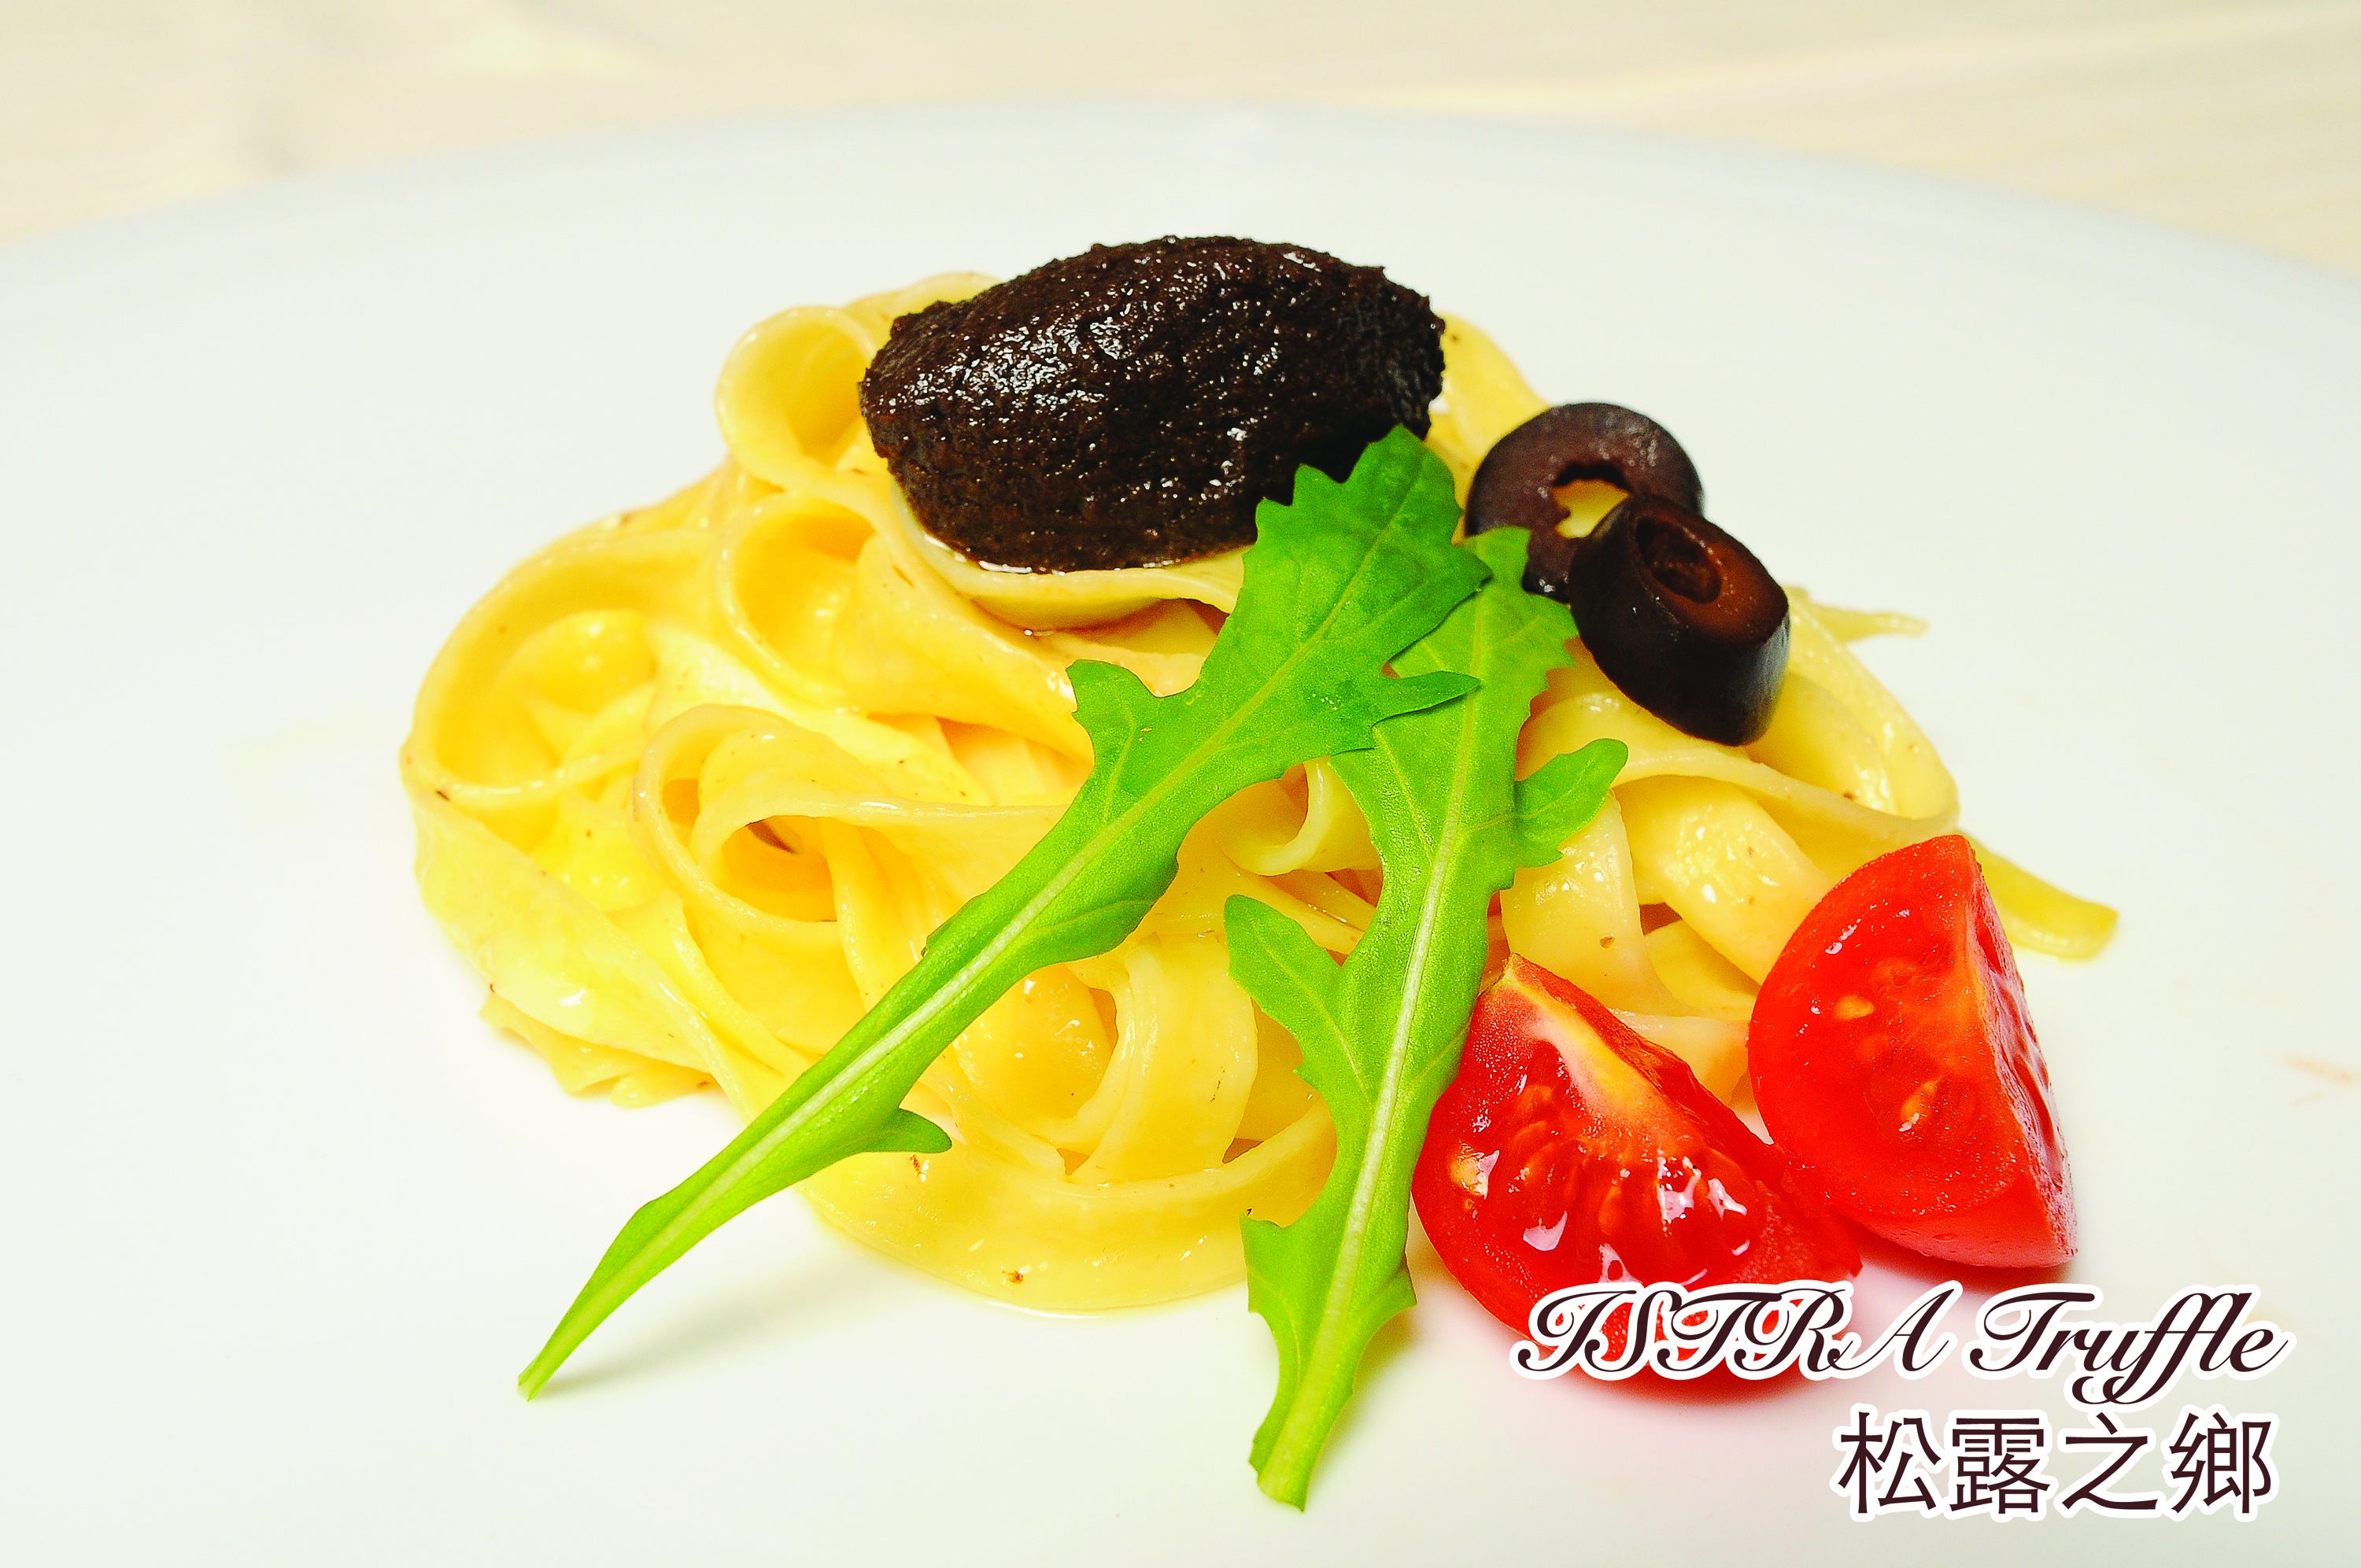 Tagliatelle with Truffle Olives Sauce